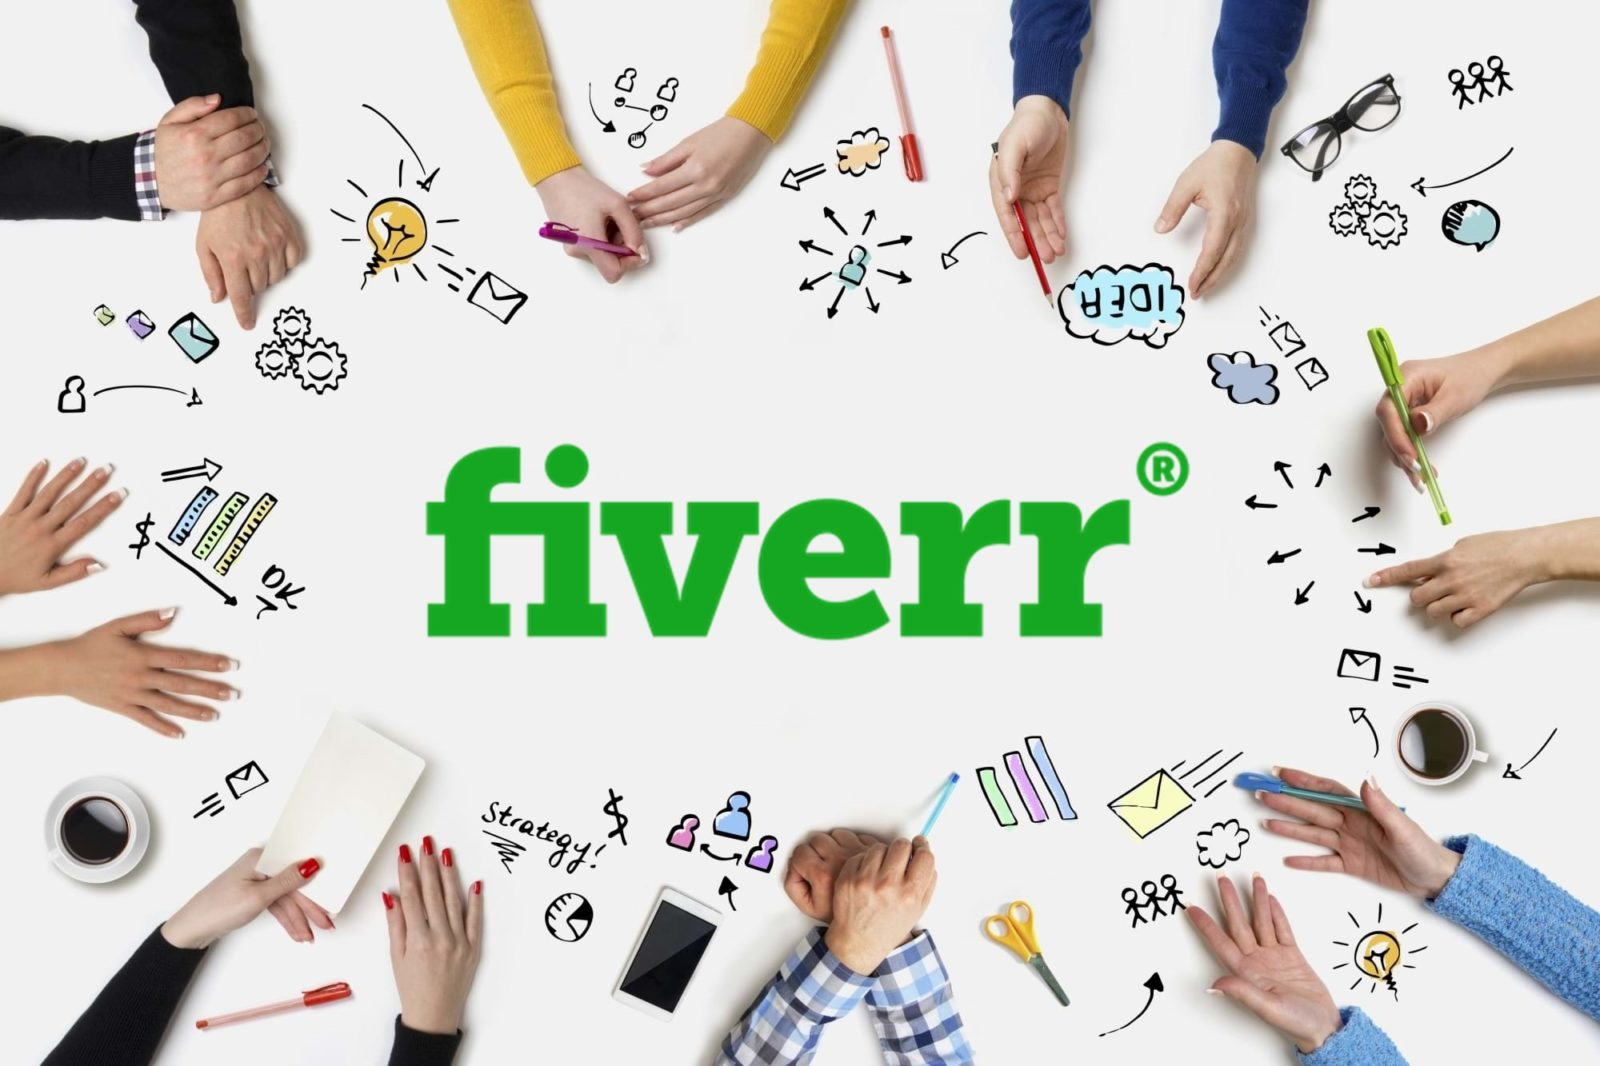 Hire A Freelancer to Write Your Resume on Fiverr.